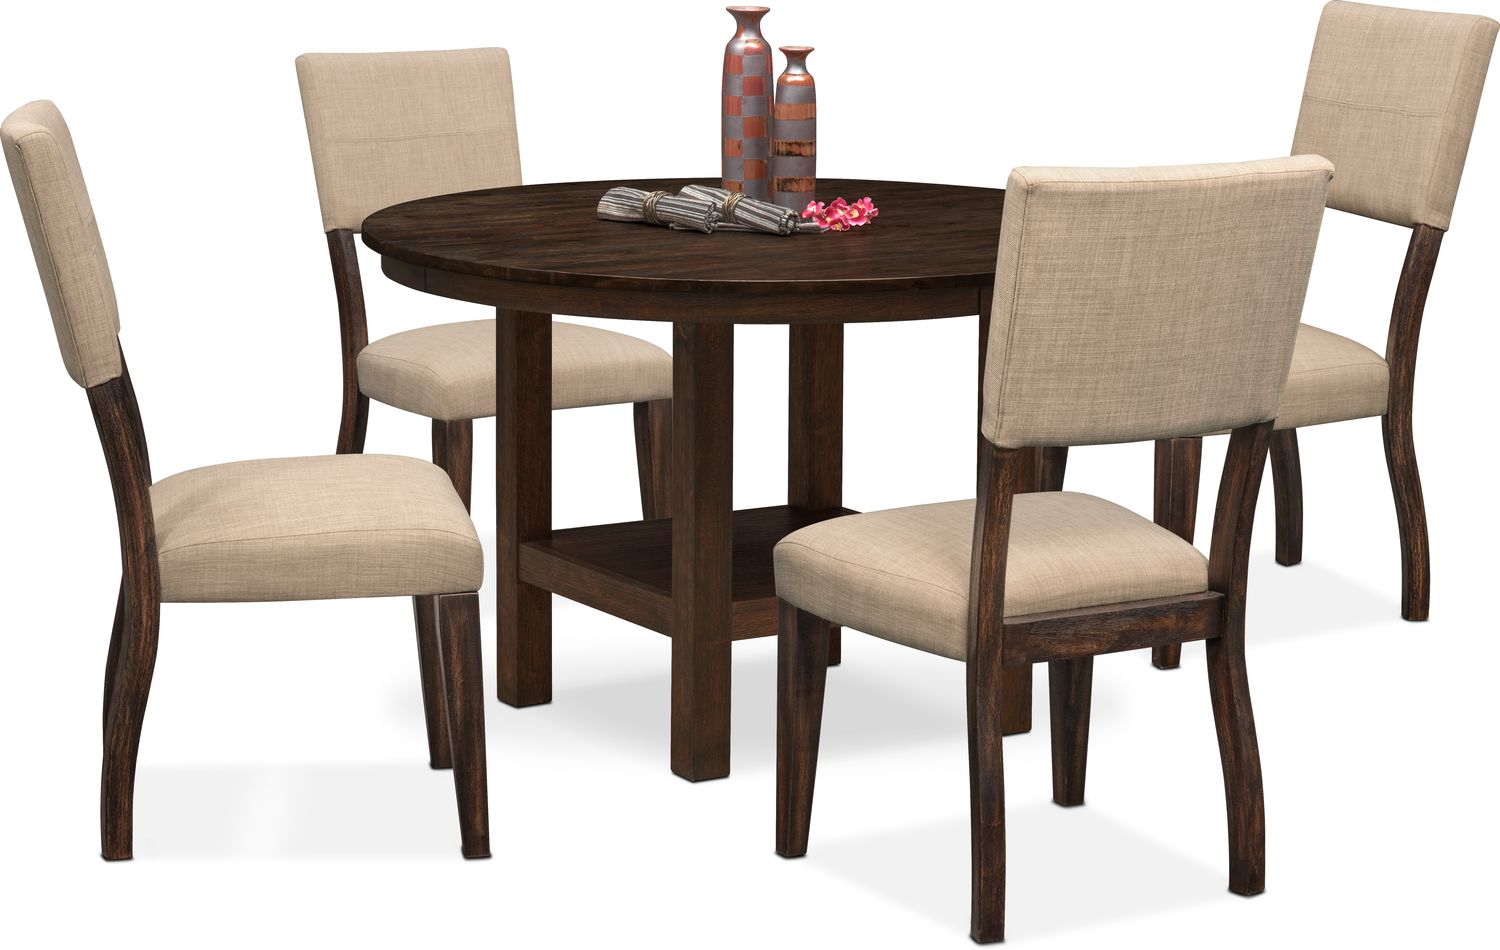 value city dining table and chairs space saving kitchen tribeca round 4 upholstered side